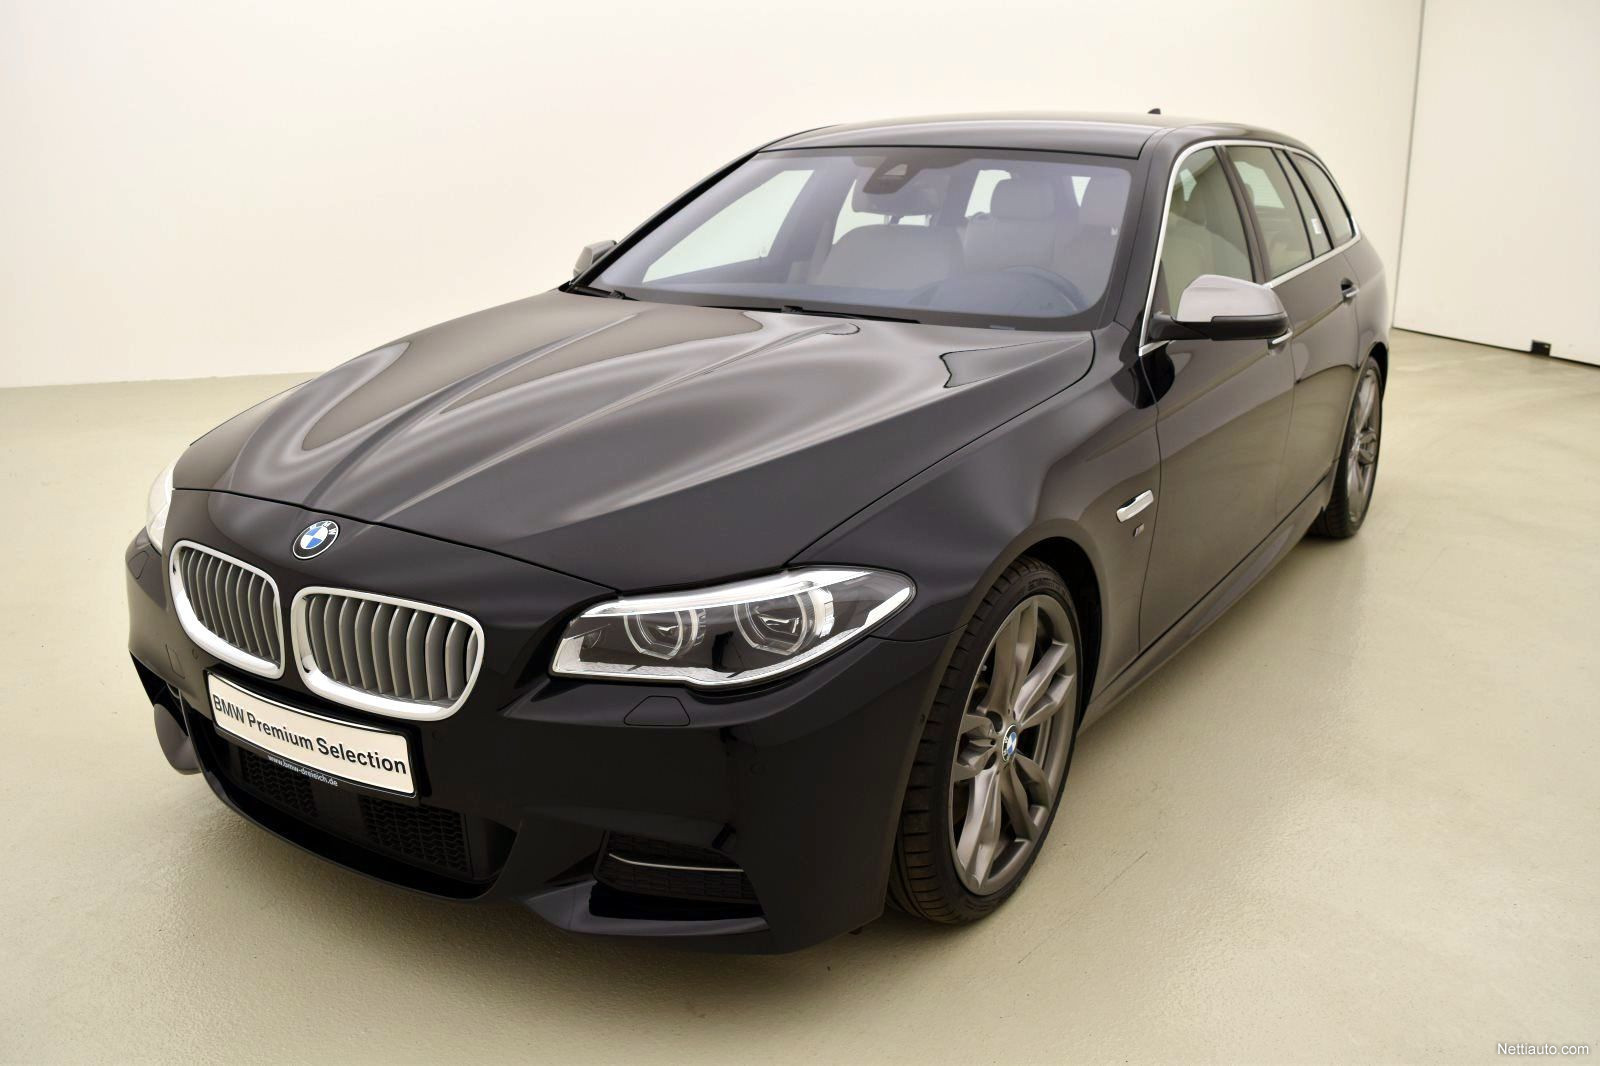 Bmw M550d Sport A Xdrive F11 Touring Facelift 2015 Station Wagon 2015 Used Vehicle Nettiauto